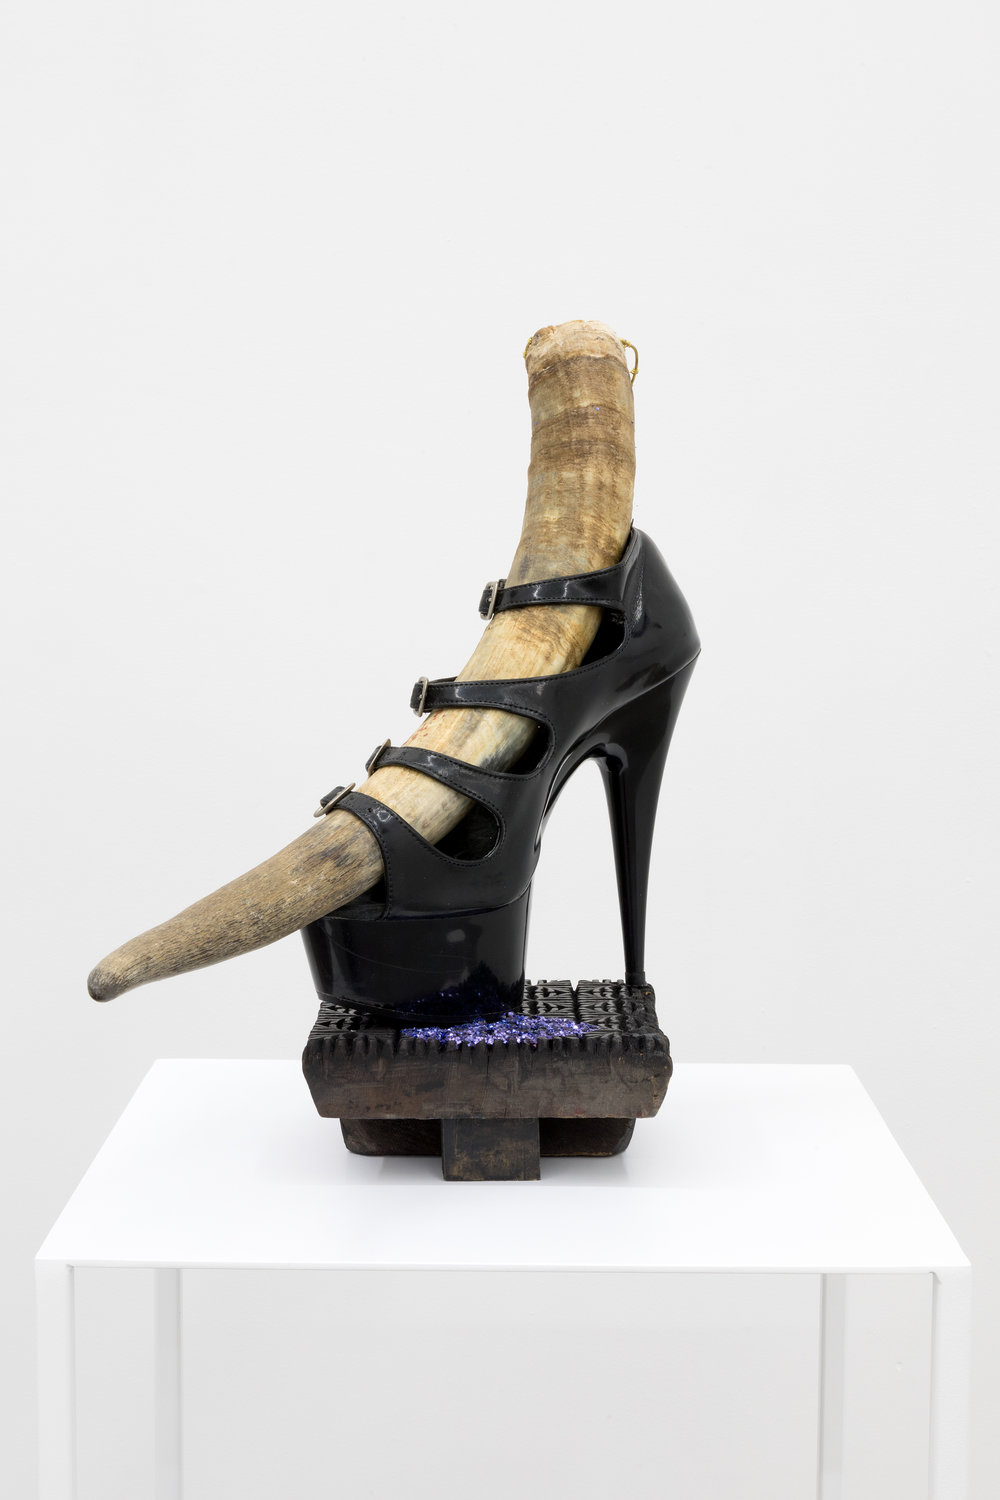 Genesis BREYER P-ORRIDGE,  Shoe Horn #4